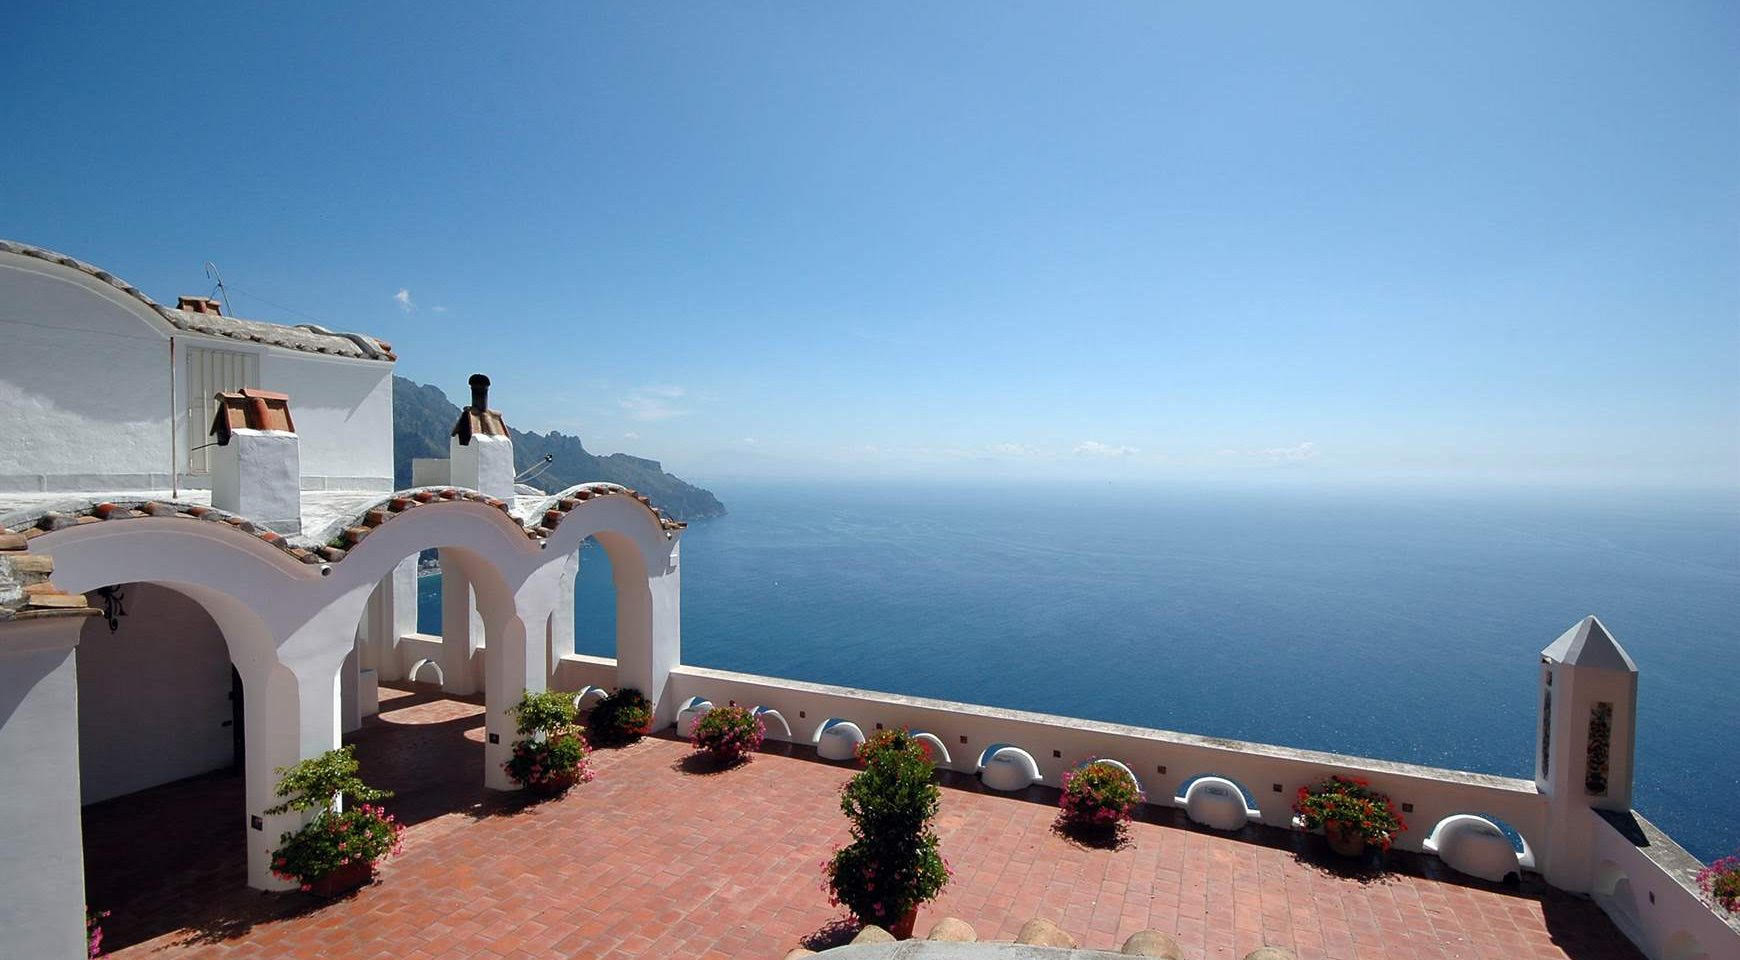 Italian real estate is popular with foreign buyers